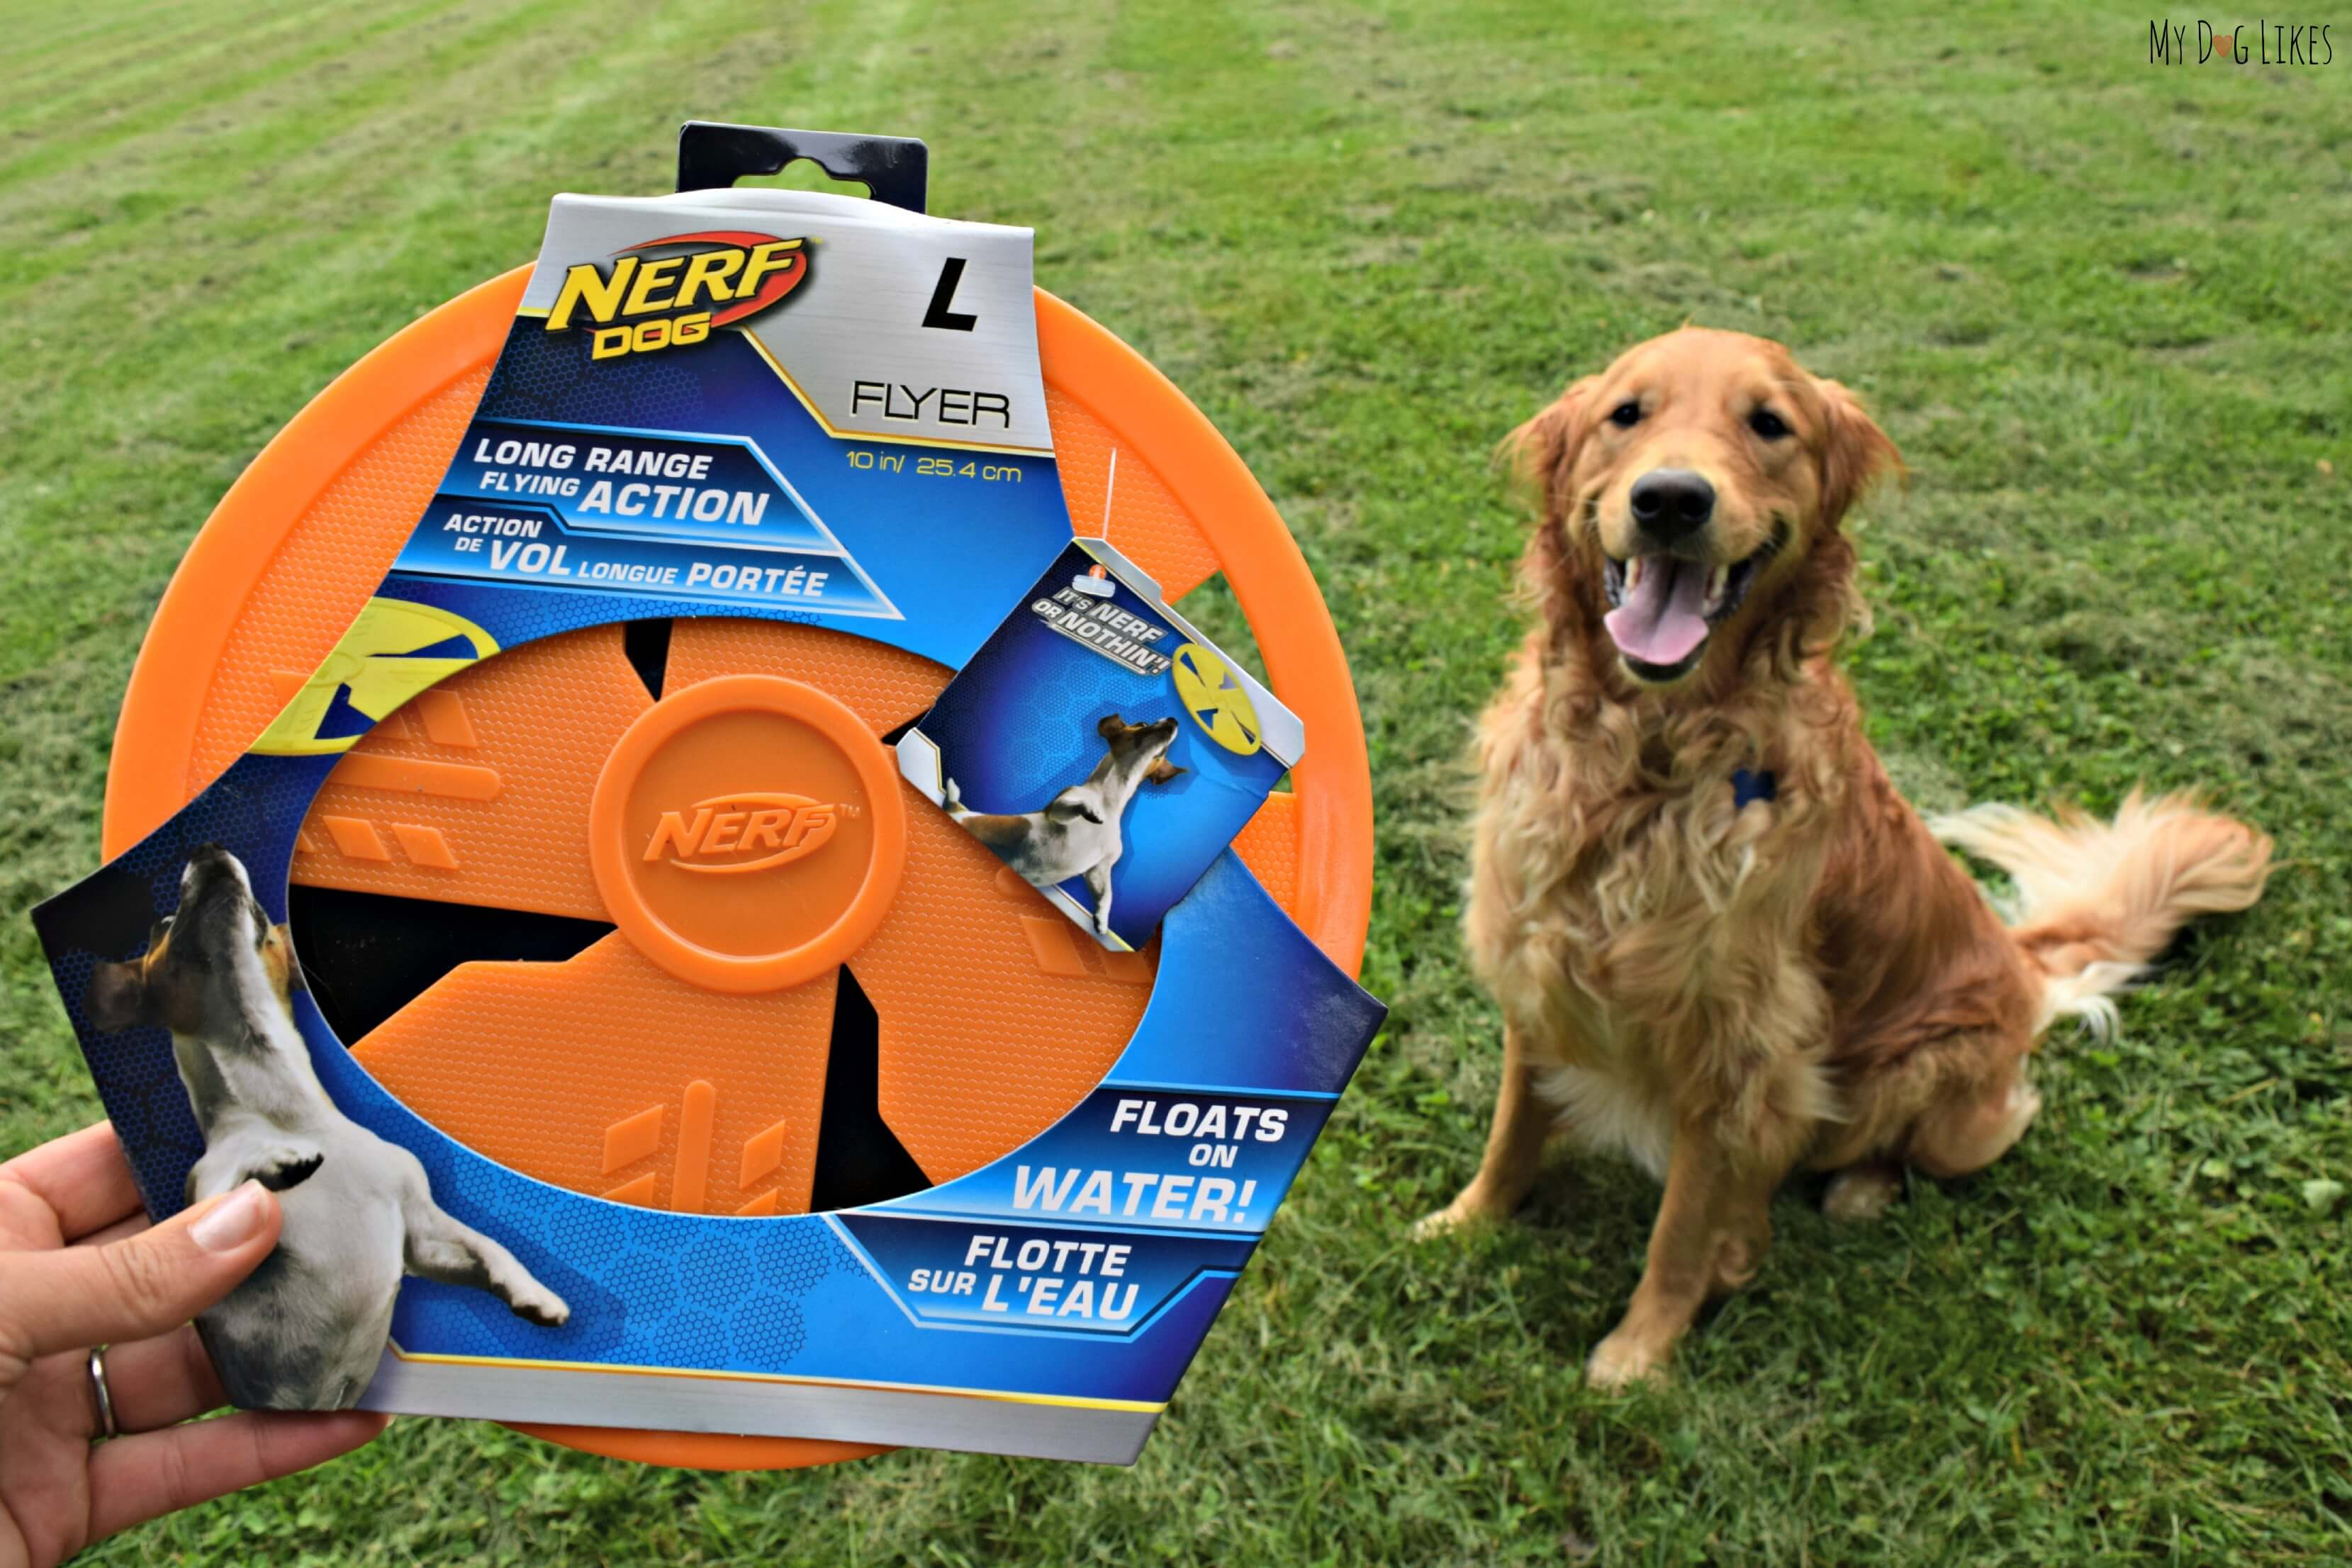 The Nerf Dog Flyer Is Rated #1 By Our Frisbee Connoisseur Charlie!